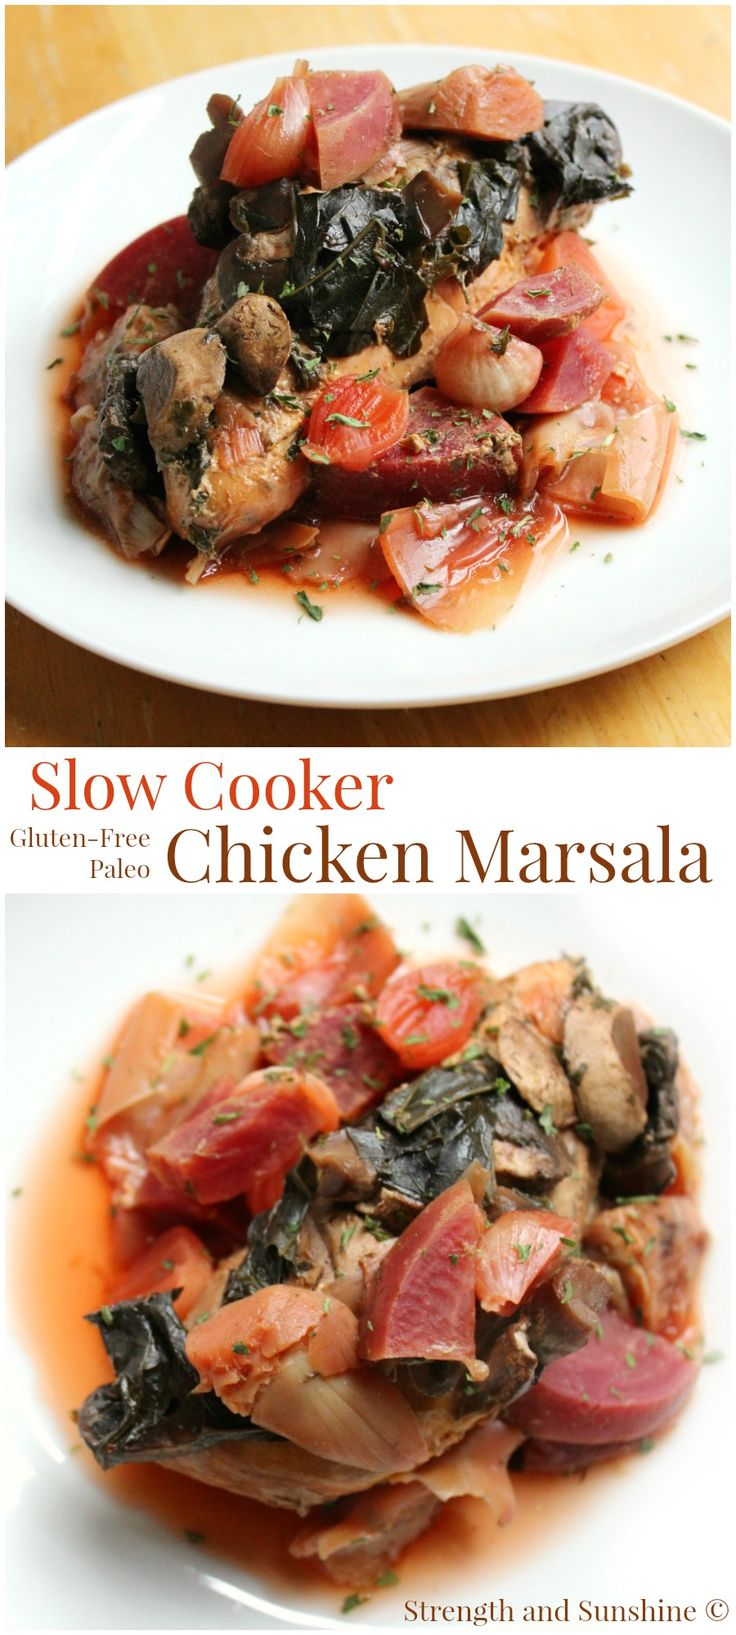 Slow Cooker Chicken Marsala | Strength and Sunshine @RebeccaGF666 Chicken slow cooked with loads of vegetables and marsala wine. Slow cooker chicken marsala is a no-fuss and fun twist on the Italian classic. A perfect healthy gluten-free and paleo weeknight dinner recipe the whole family will enjoy!